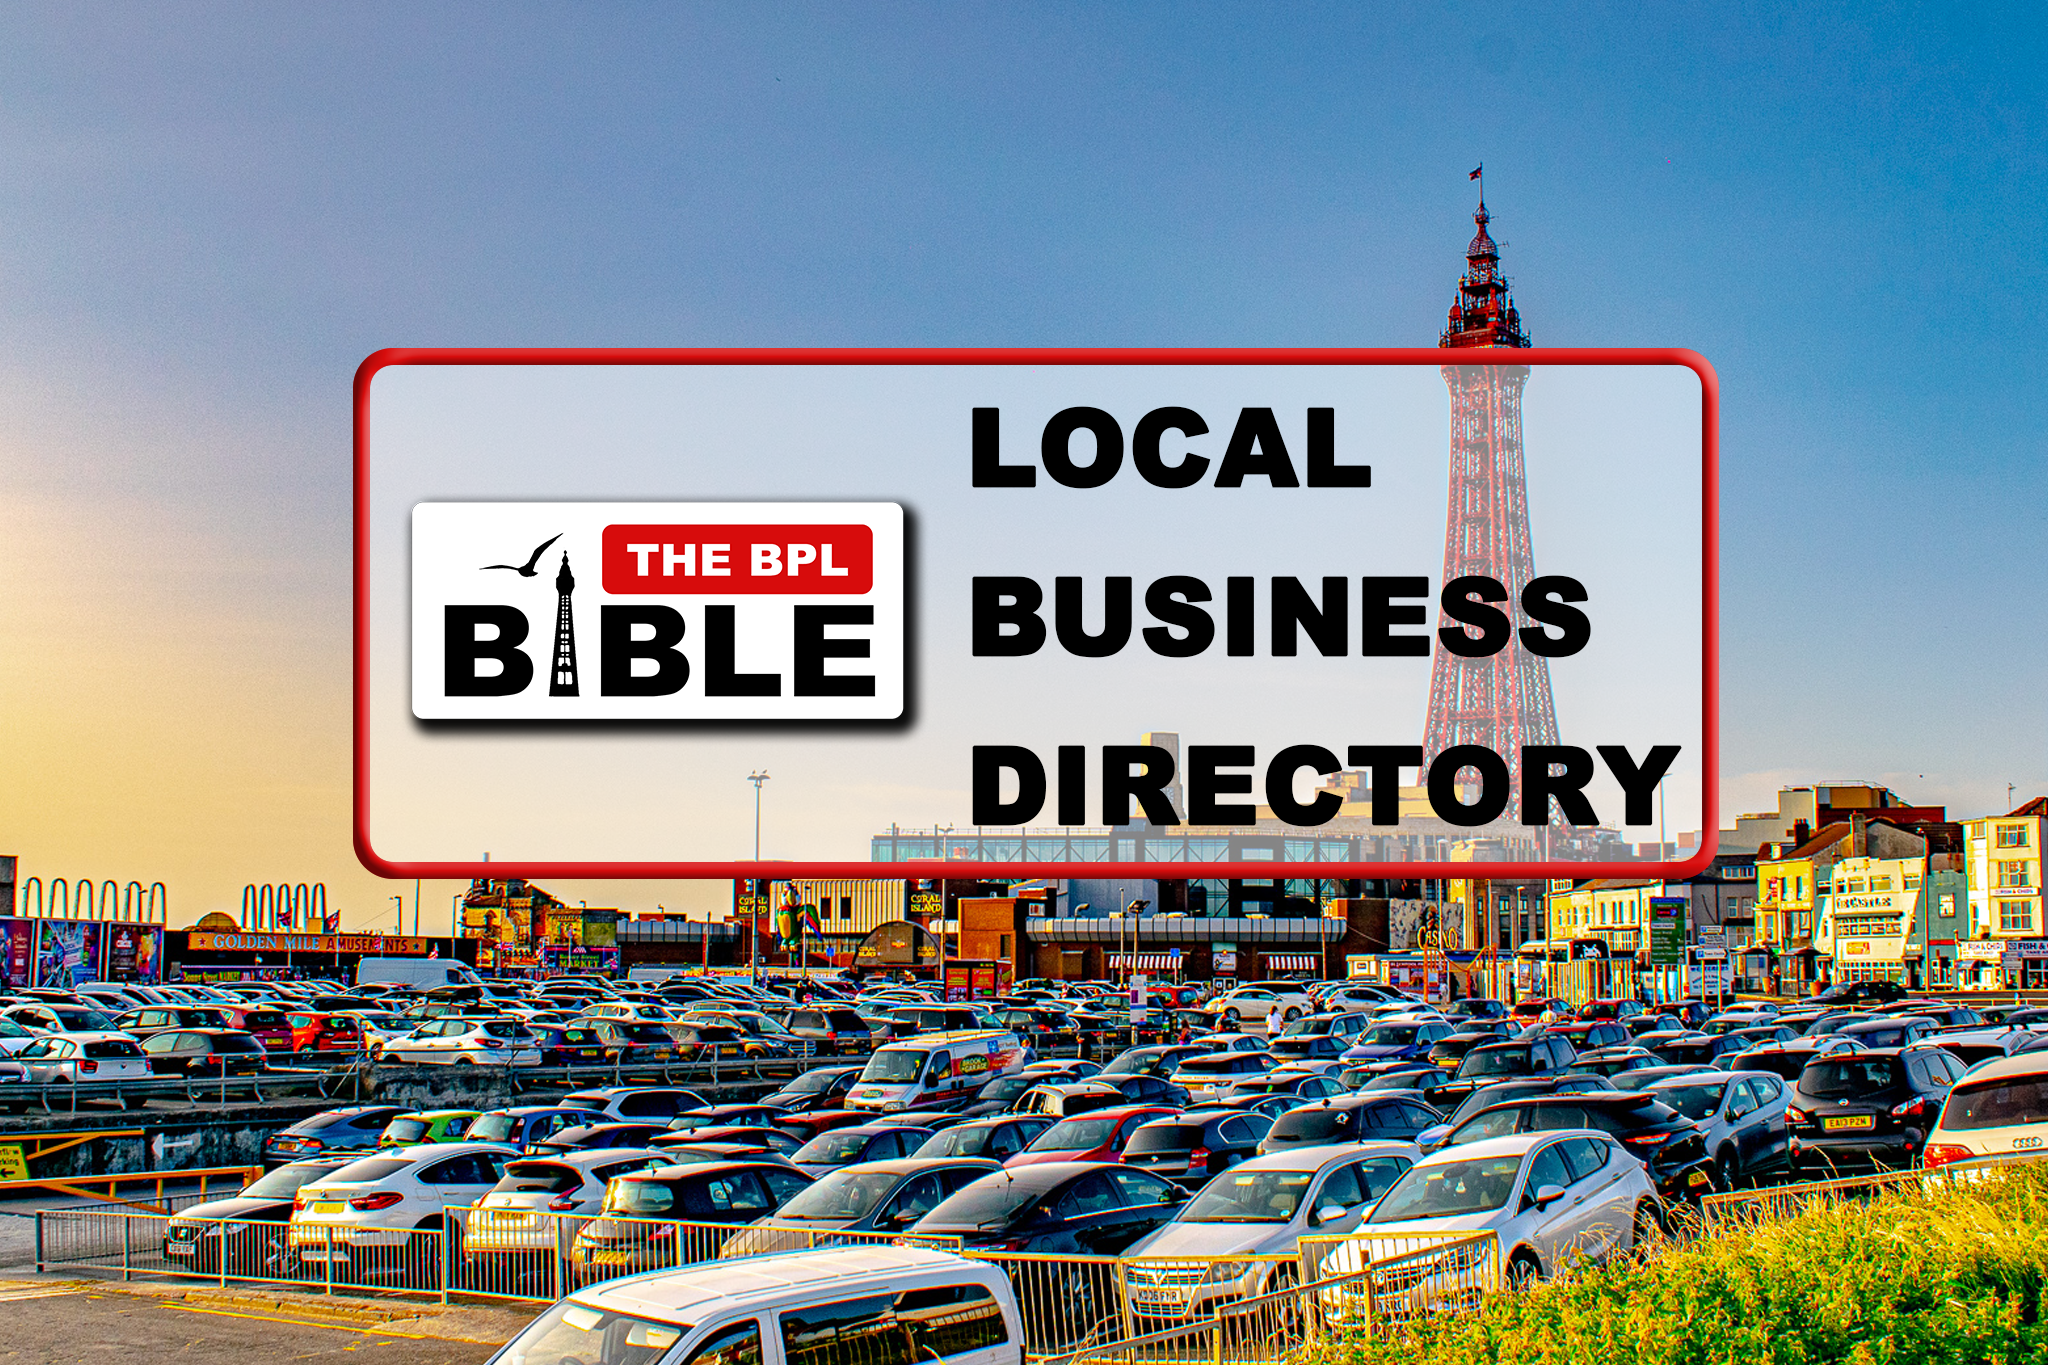 Blackpool Local Business Directory